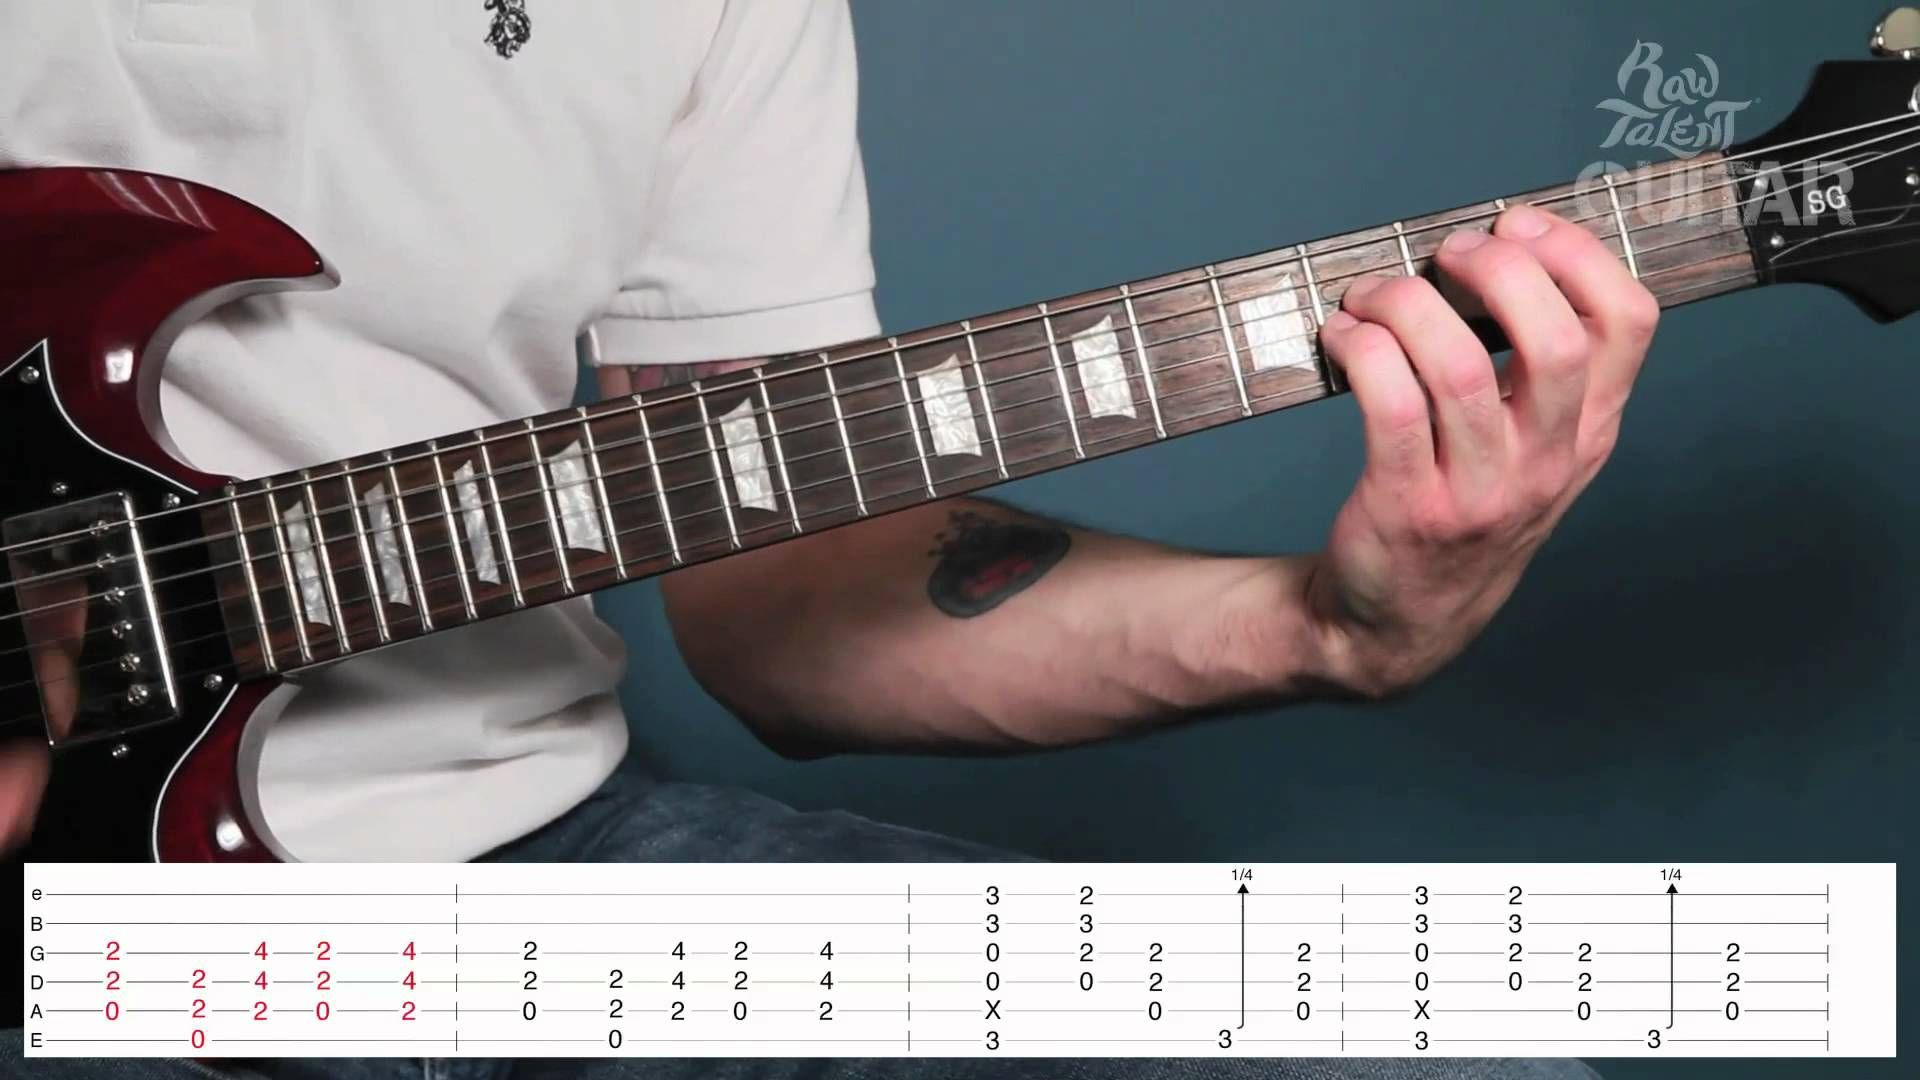 Learn How To Play Back In Black by AC DC on Guitar video lesson